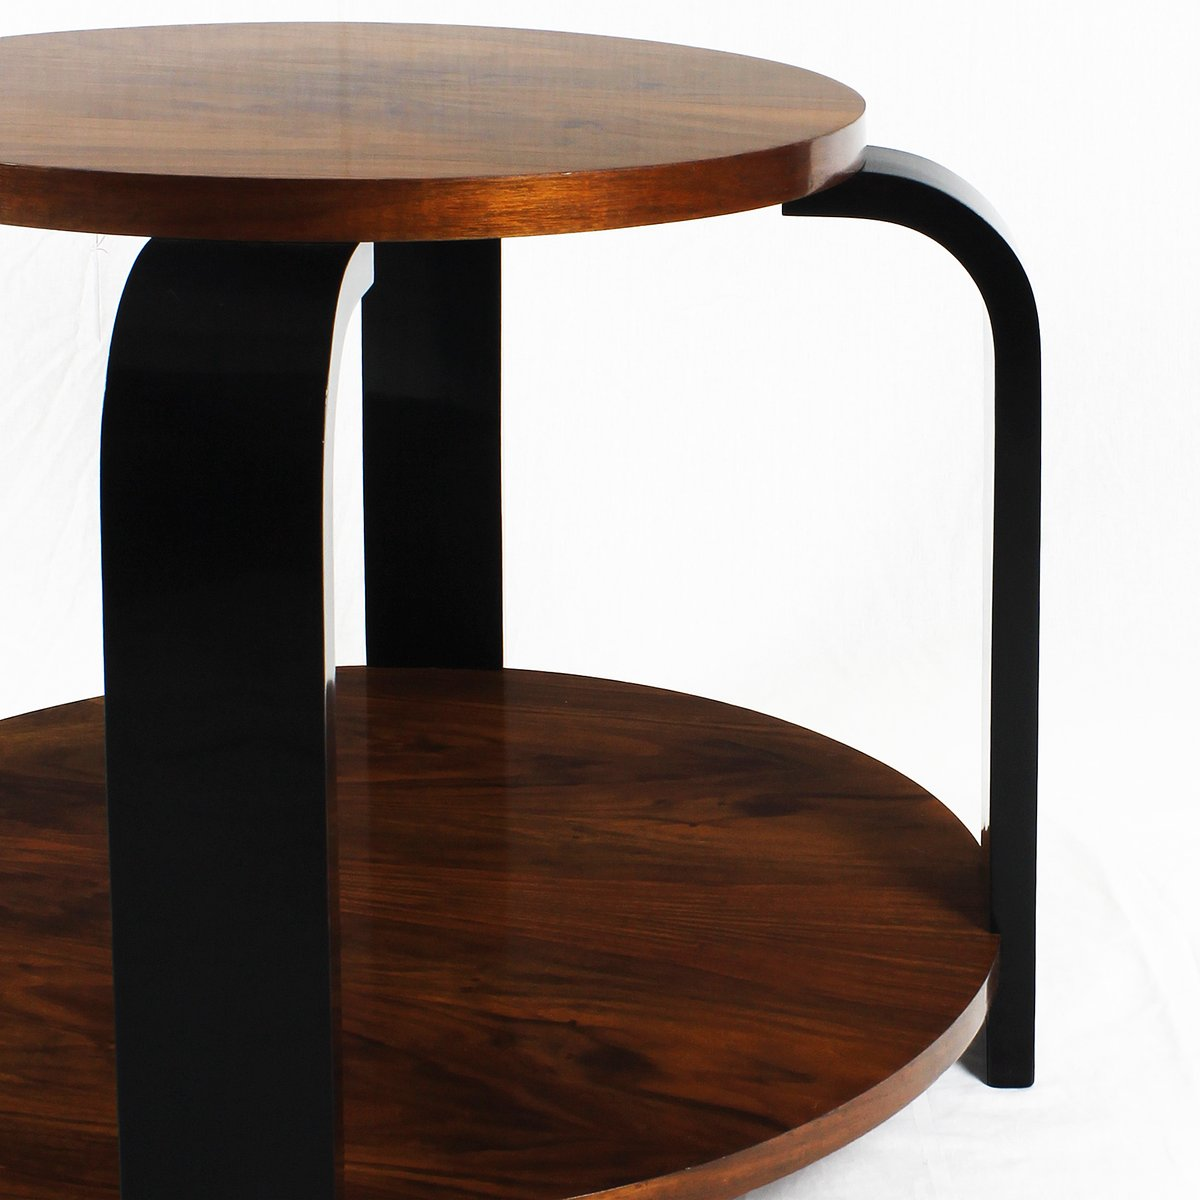 Art deco side table 1930s for sale at pamono art deco side table 1930s 5 363800 price per piece geotapseo Images